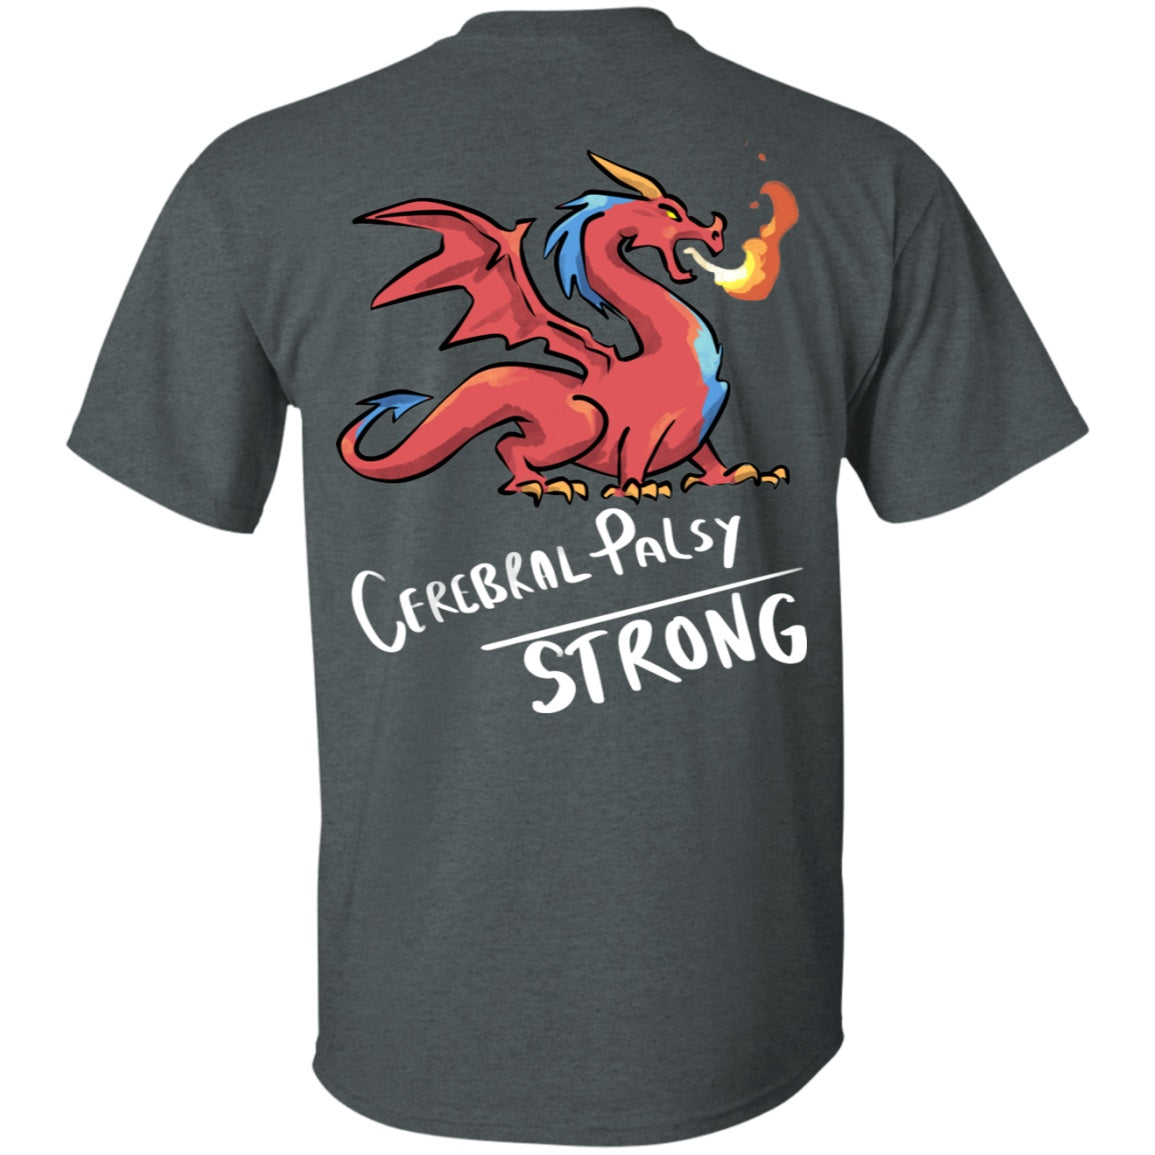 Cerebral Palsy Strong Dragon Unisex T-Shirt - The Unchargeables